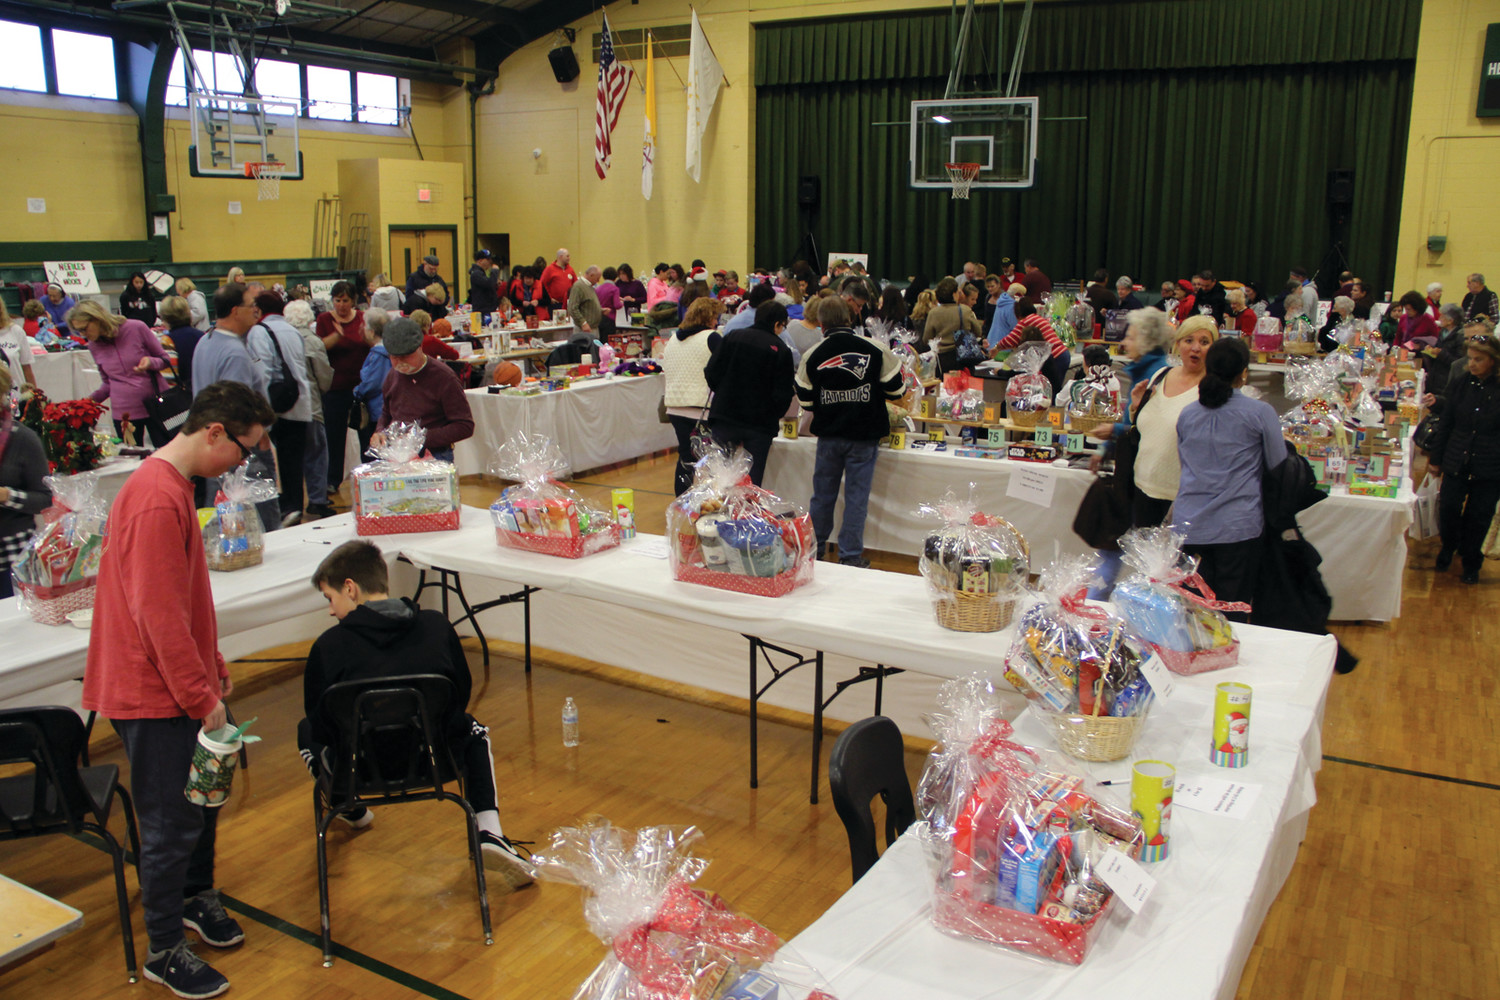 A FULL GYM: There was surely something for everyone at the St. Kevin Church Christmas Bazaar that filled both the gym and cafeteria at Hendricken.